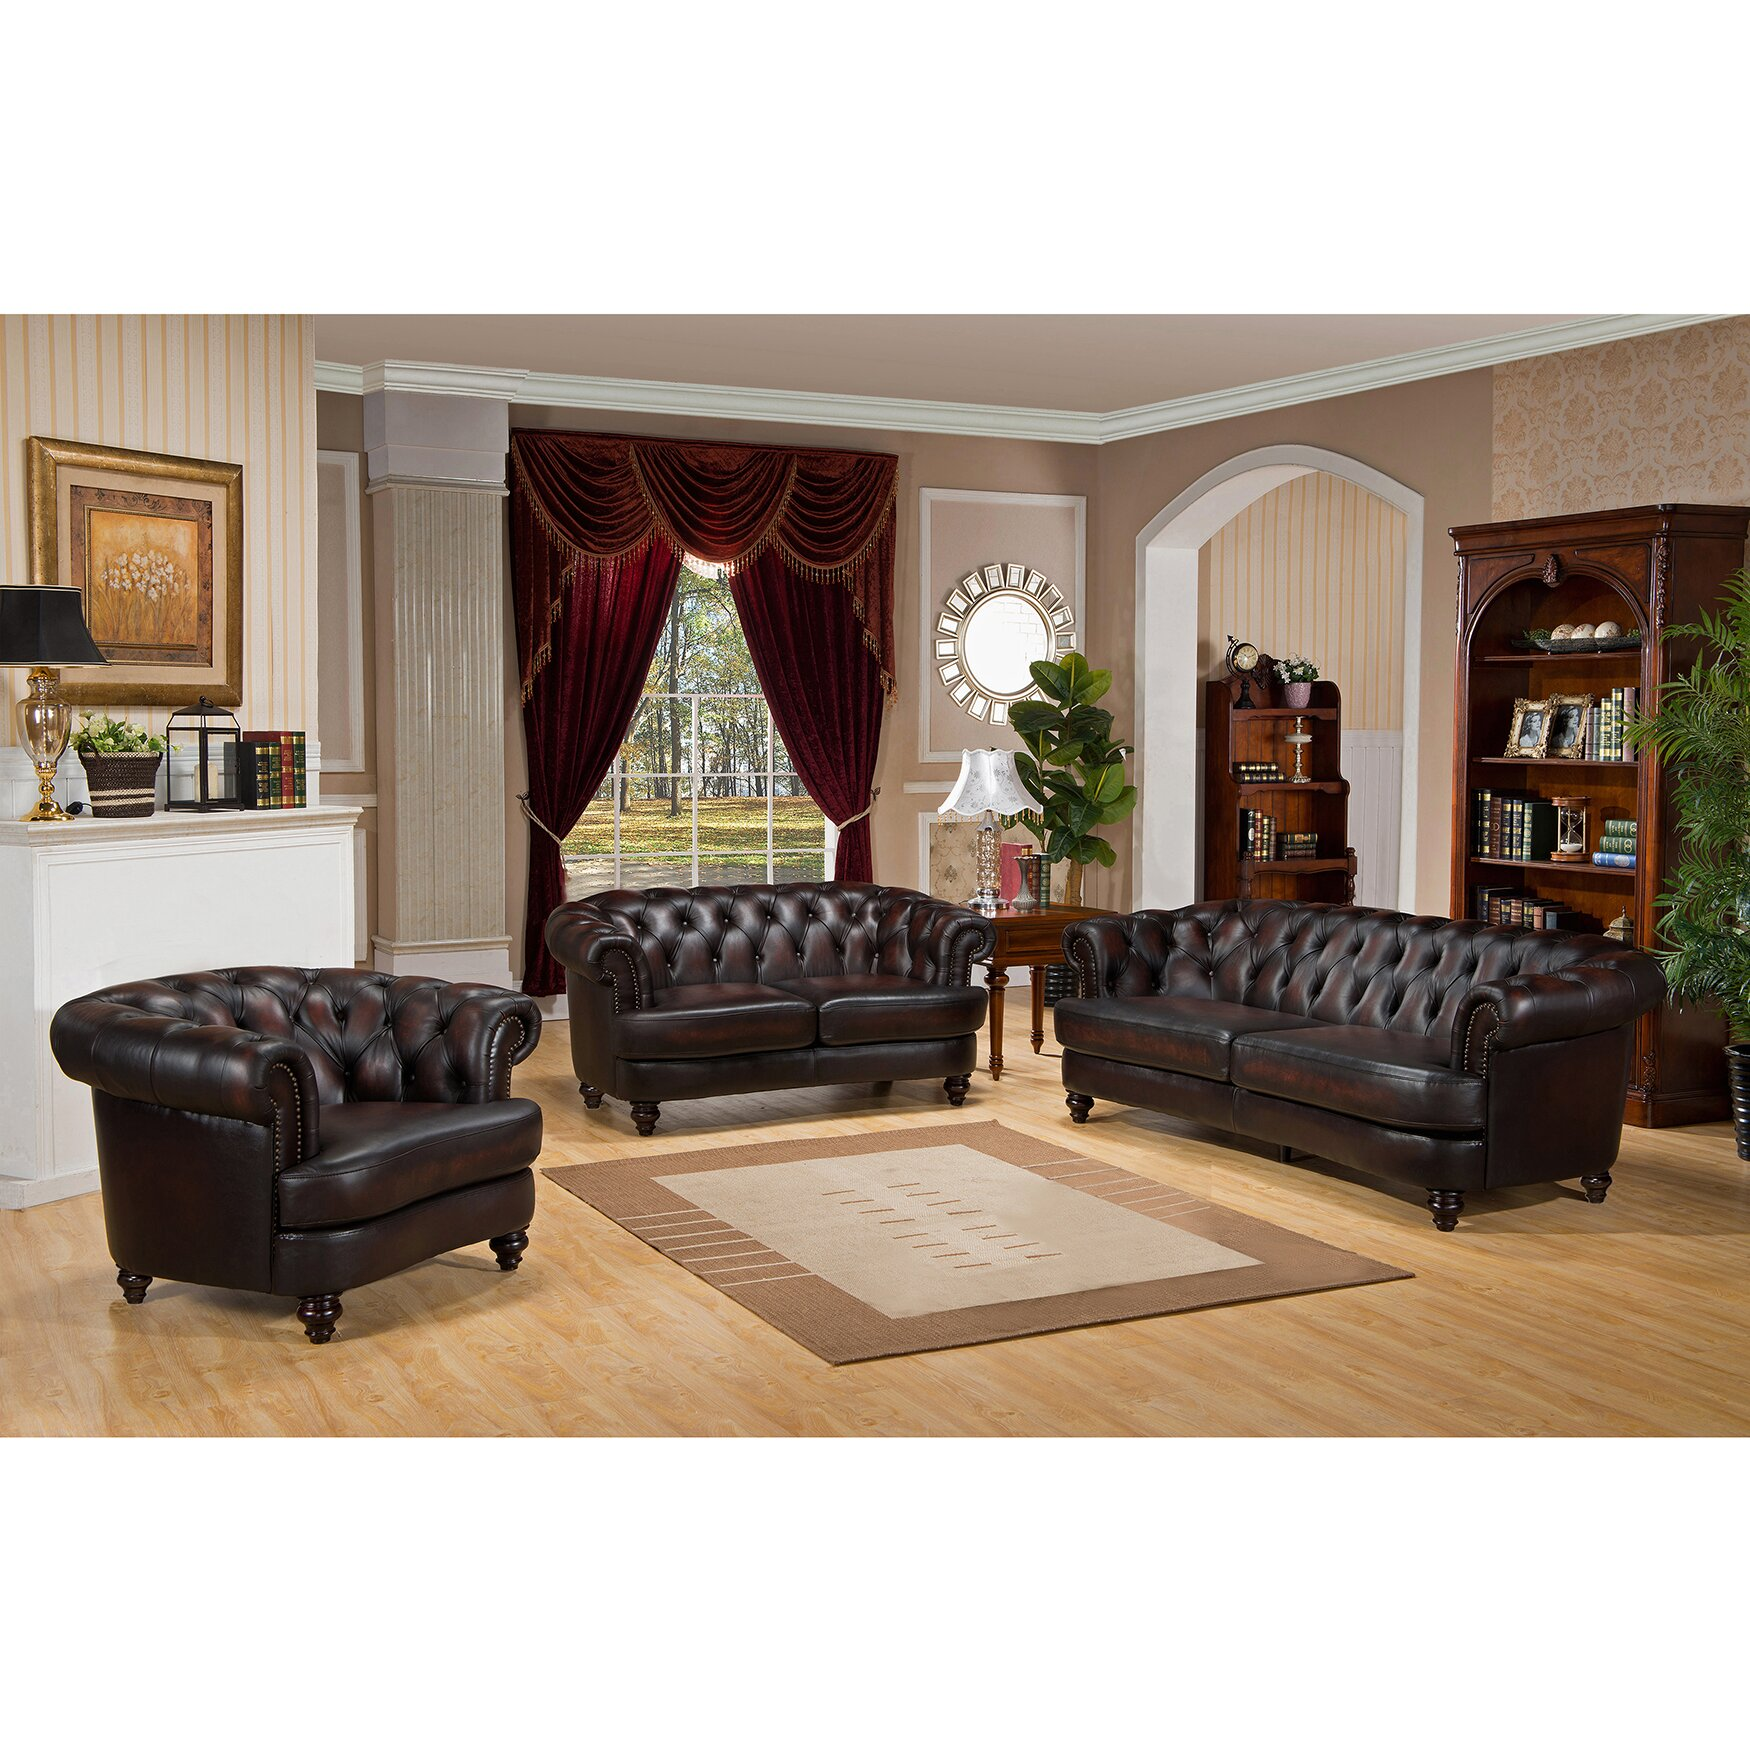 Leather Living Room Sets On Amax Roosevelt 3 Piece Leather Living Room Set Reviews Wayfair